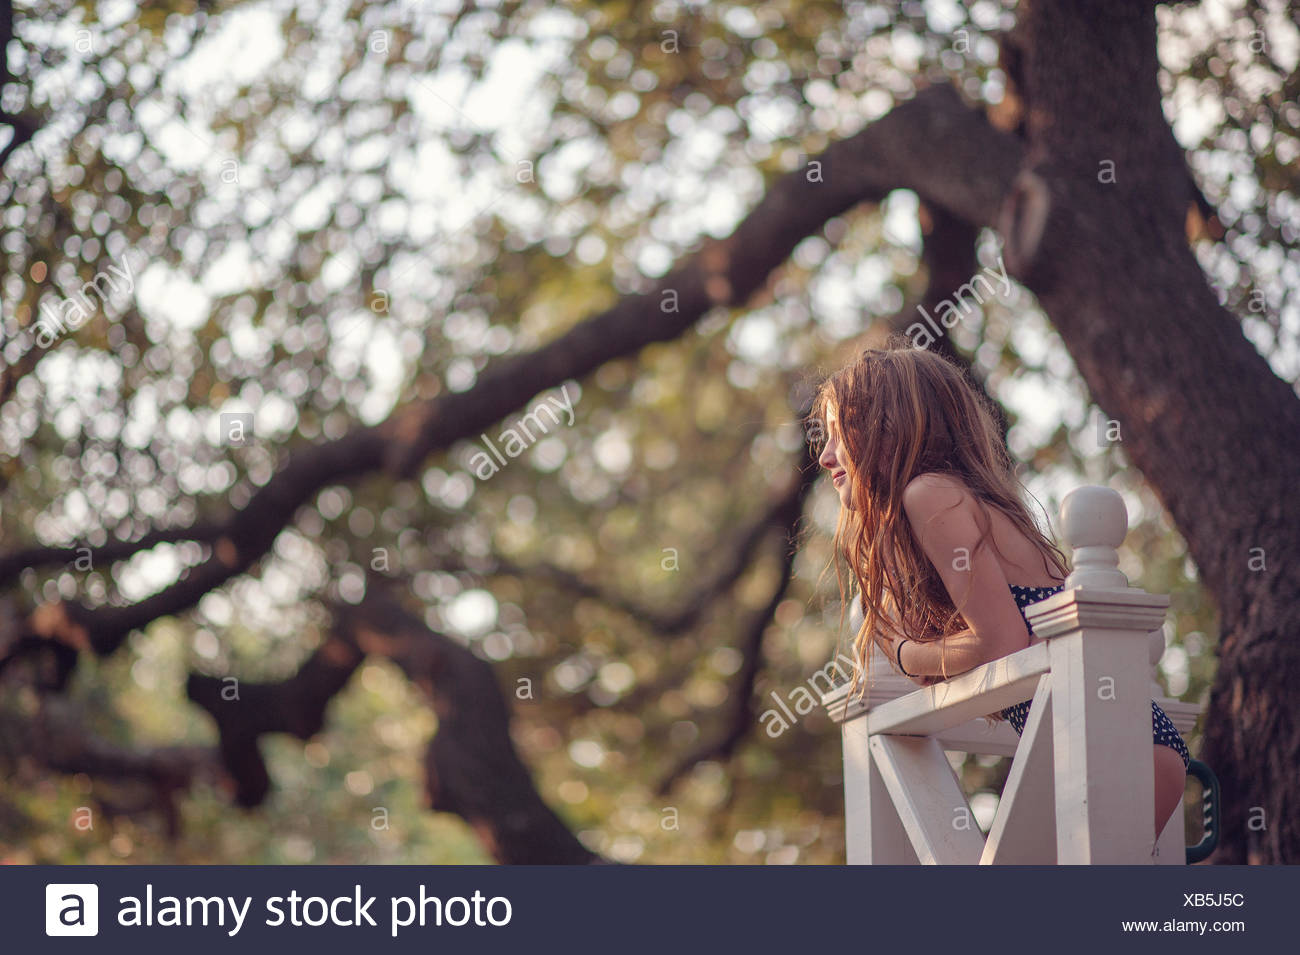 Girl leaning against wooden fence in backyard Stock Photo